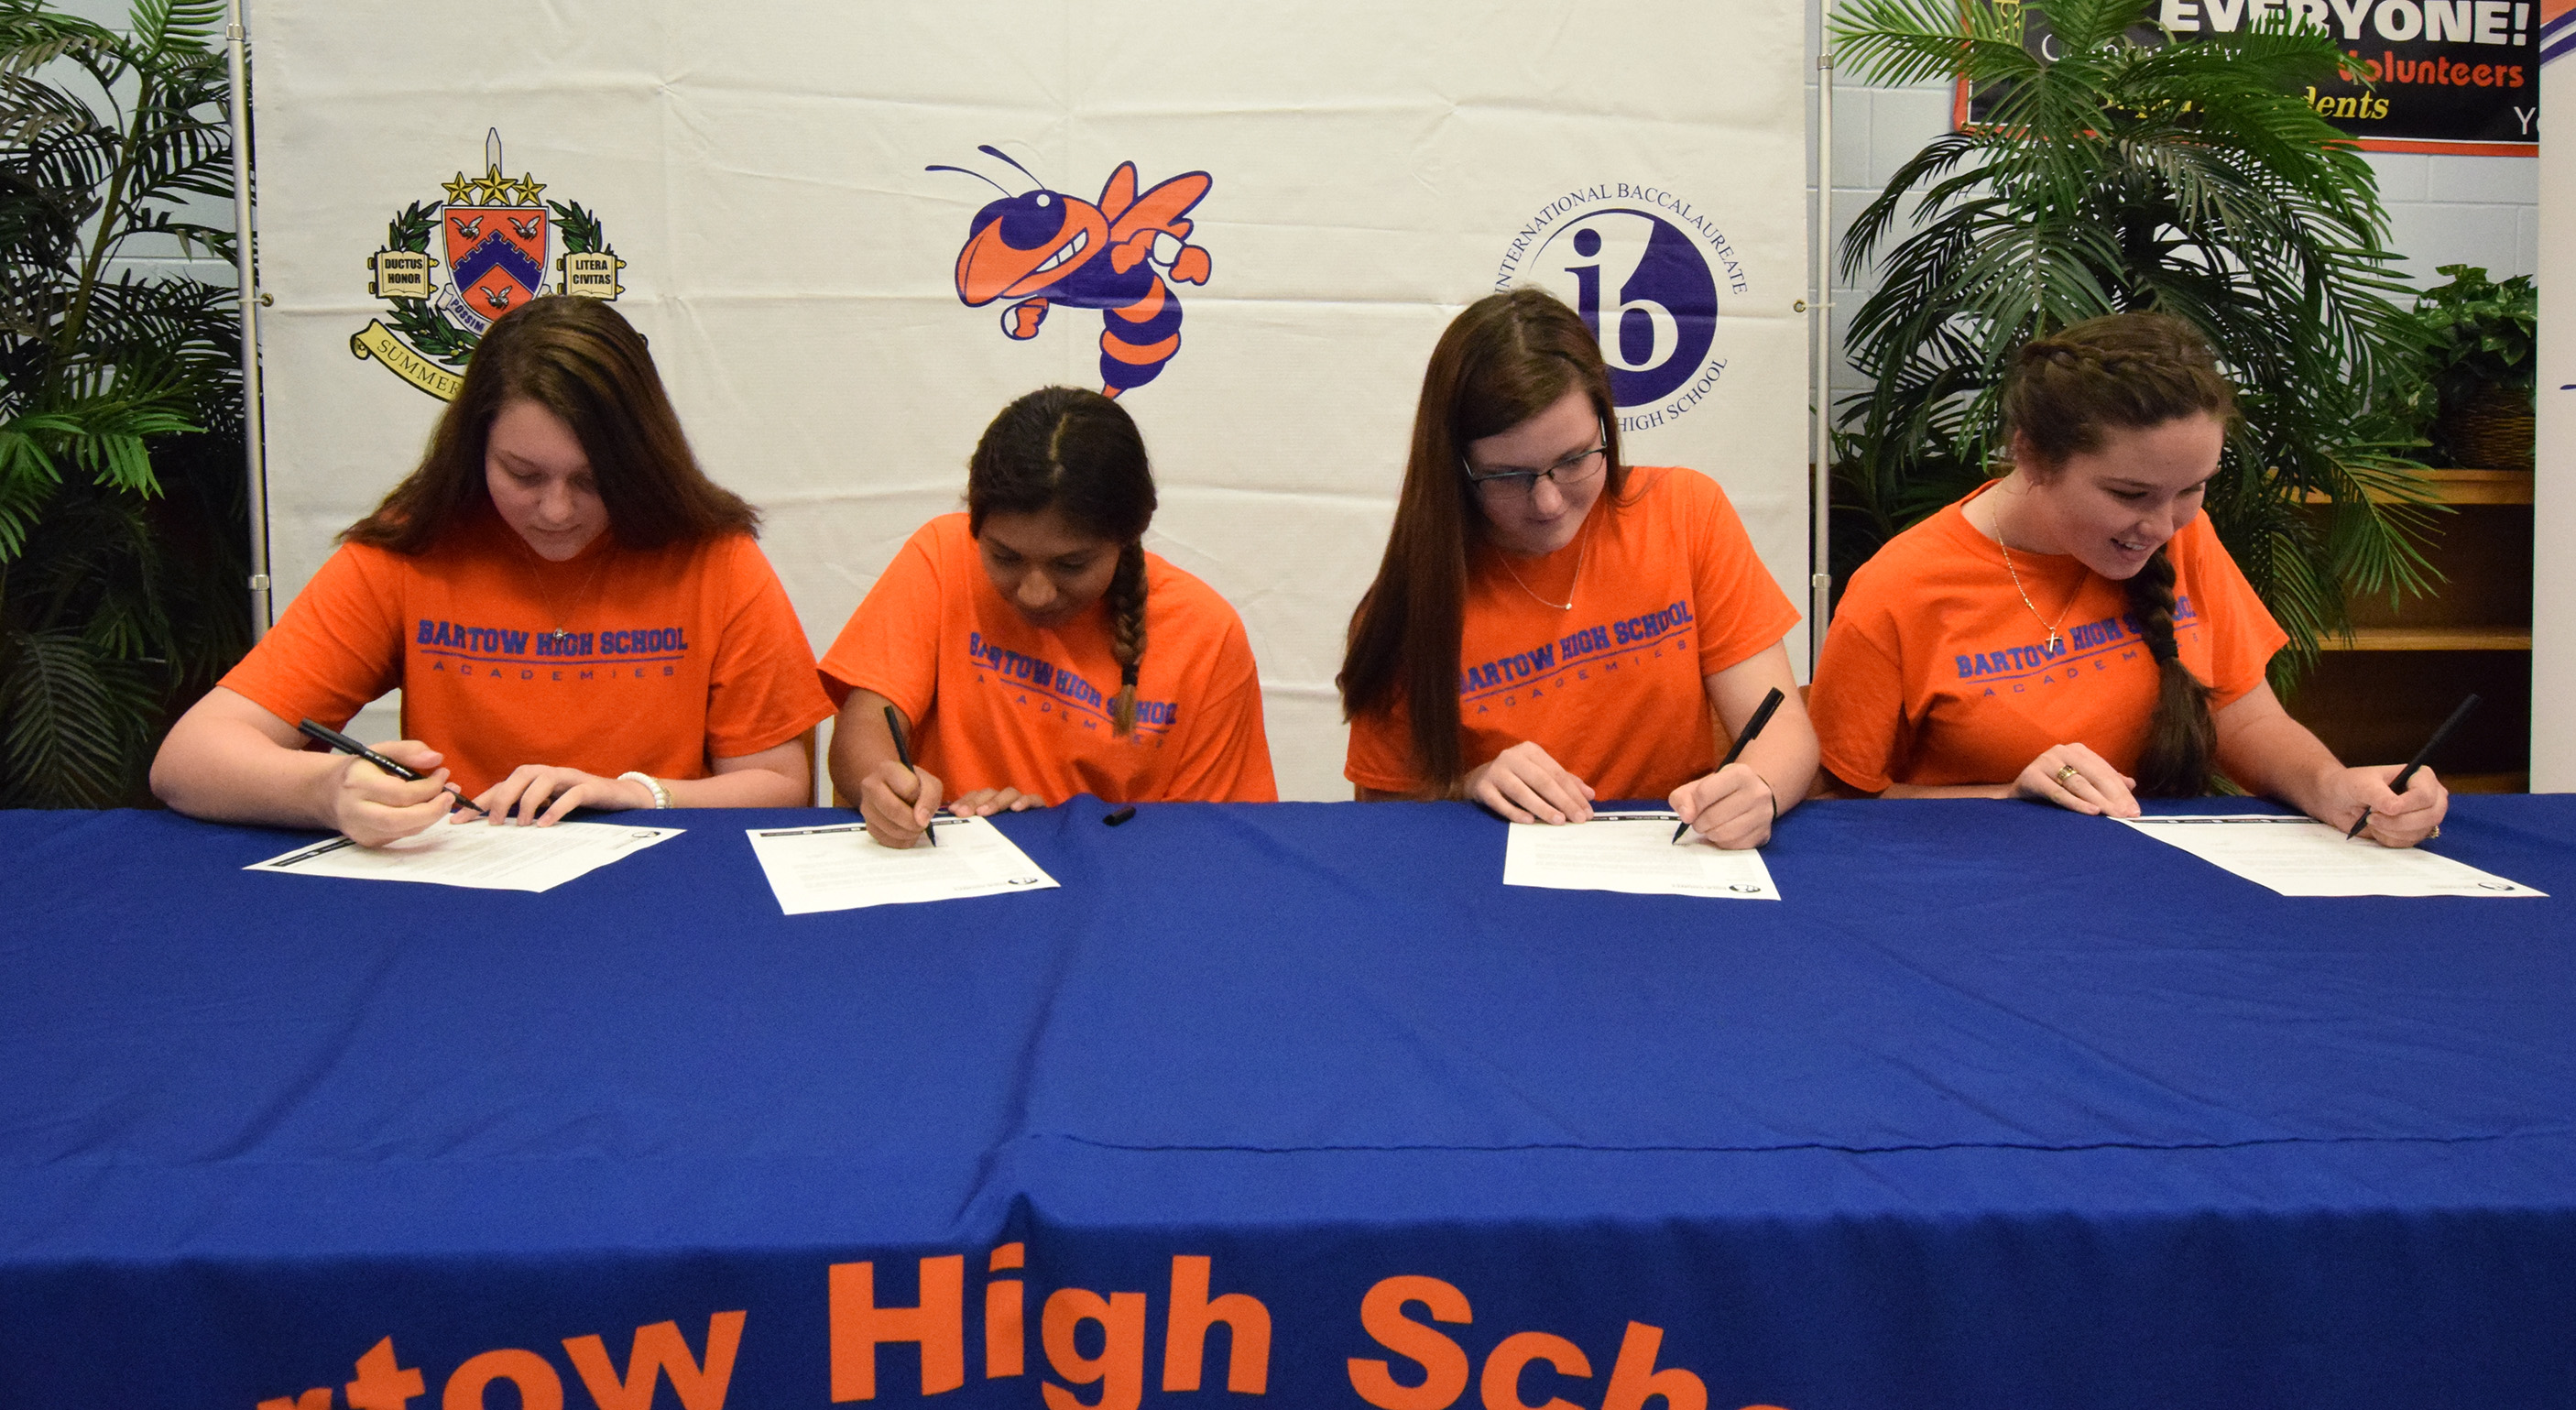 Bartow High students take part in a signing event for the ELITE teacher education program.